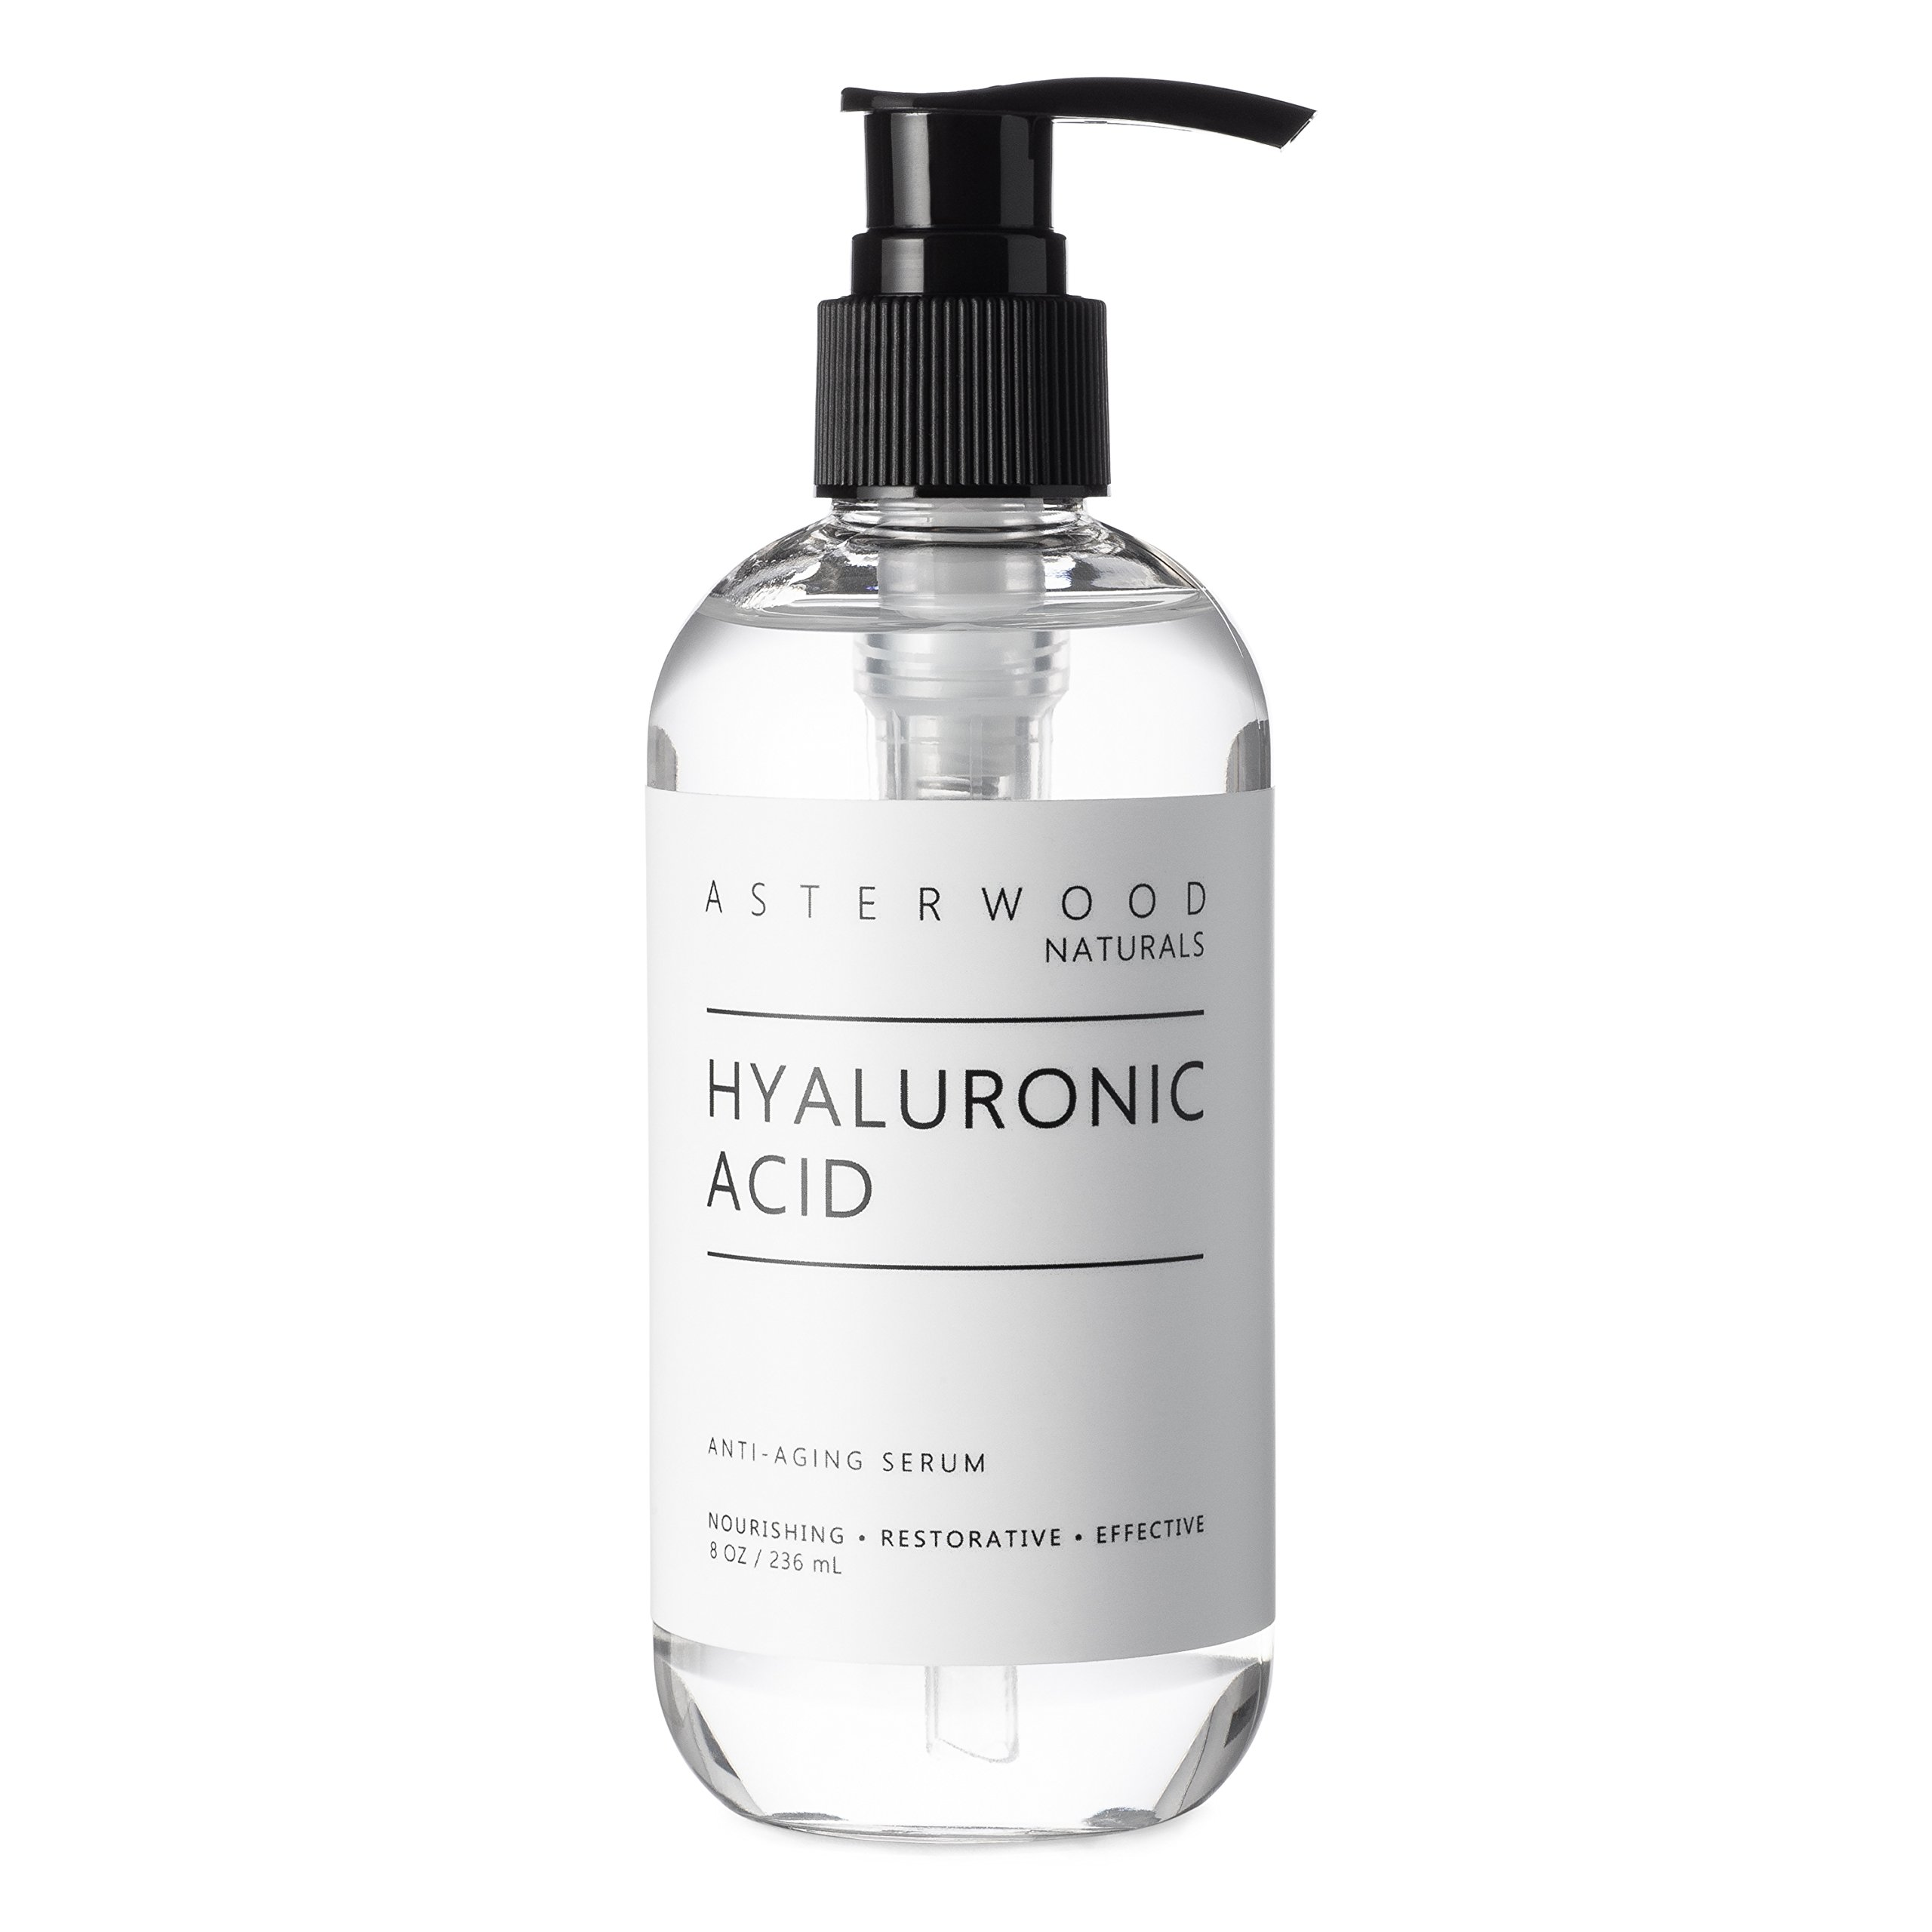 Hyaluronic Acid Serum 8 oz, 100% Pure Organic HA, Anti Aging, Anti Wrinkle, Original Face Moisturizer for Dry Skin and Fine Lines, Leaves Skin Full and Plump ASTERWOOD NATURALS Pump Bottle by ASTERWOOD NATURALS